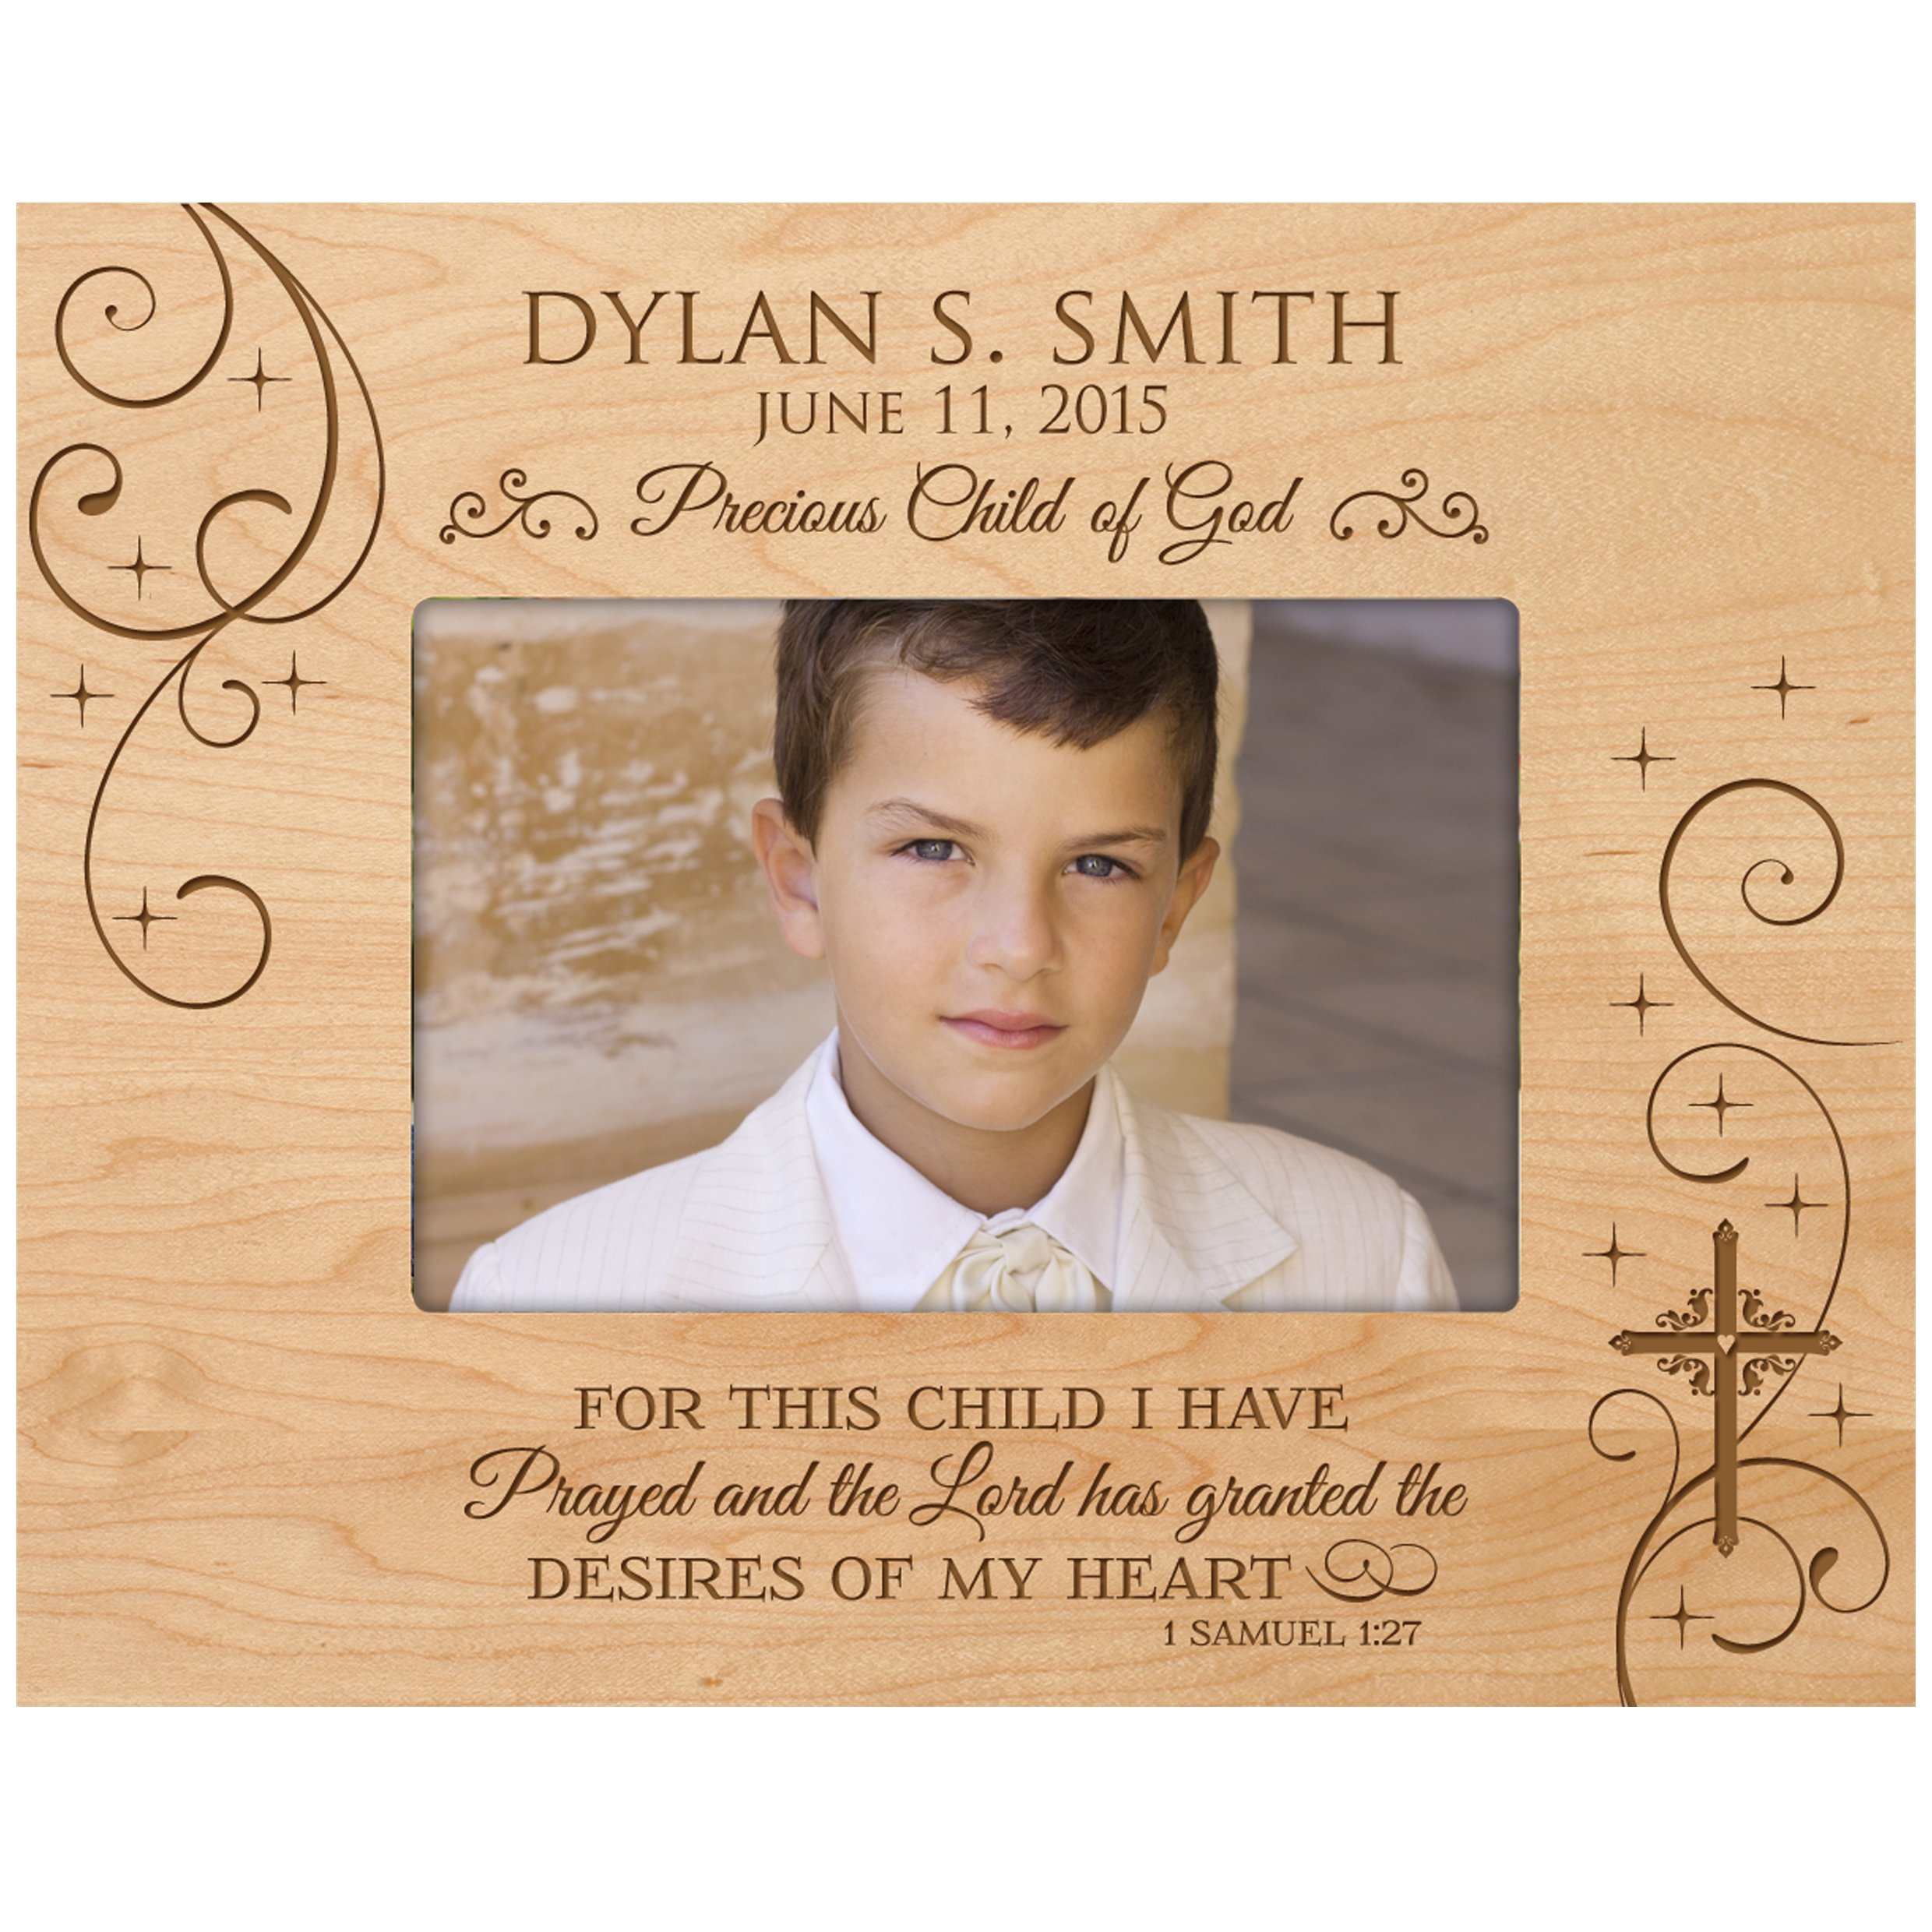 Personalized Baptism photo frame Gift Custom Engraved Precious Child of God Christening picture frame holds For this Child I have Prayed and the Lord has granted 1 Samuel 1:27 (5 x 7, Maple)